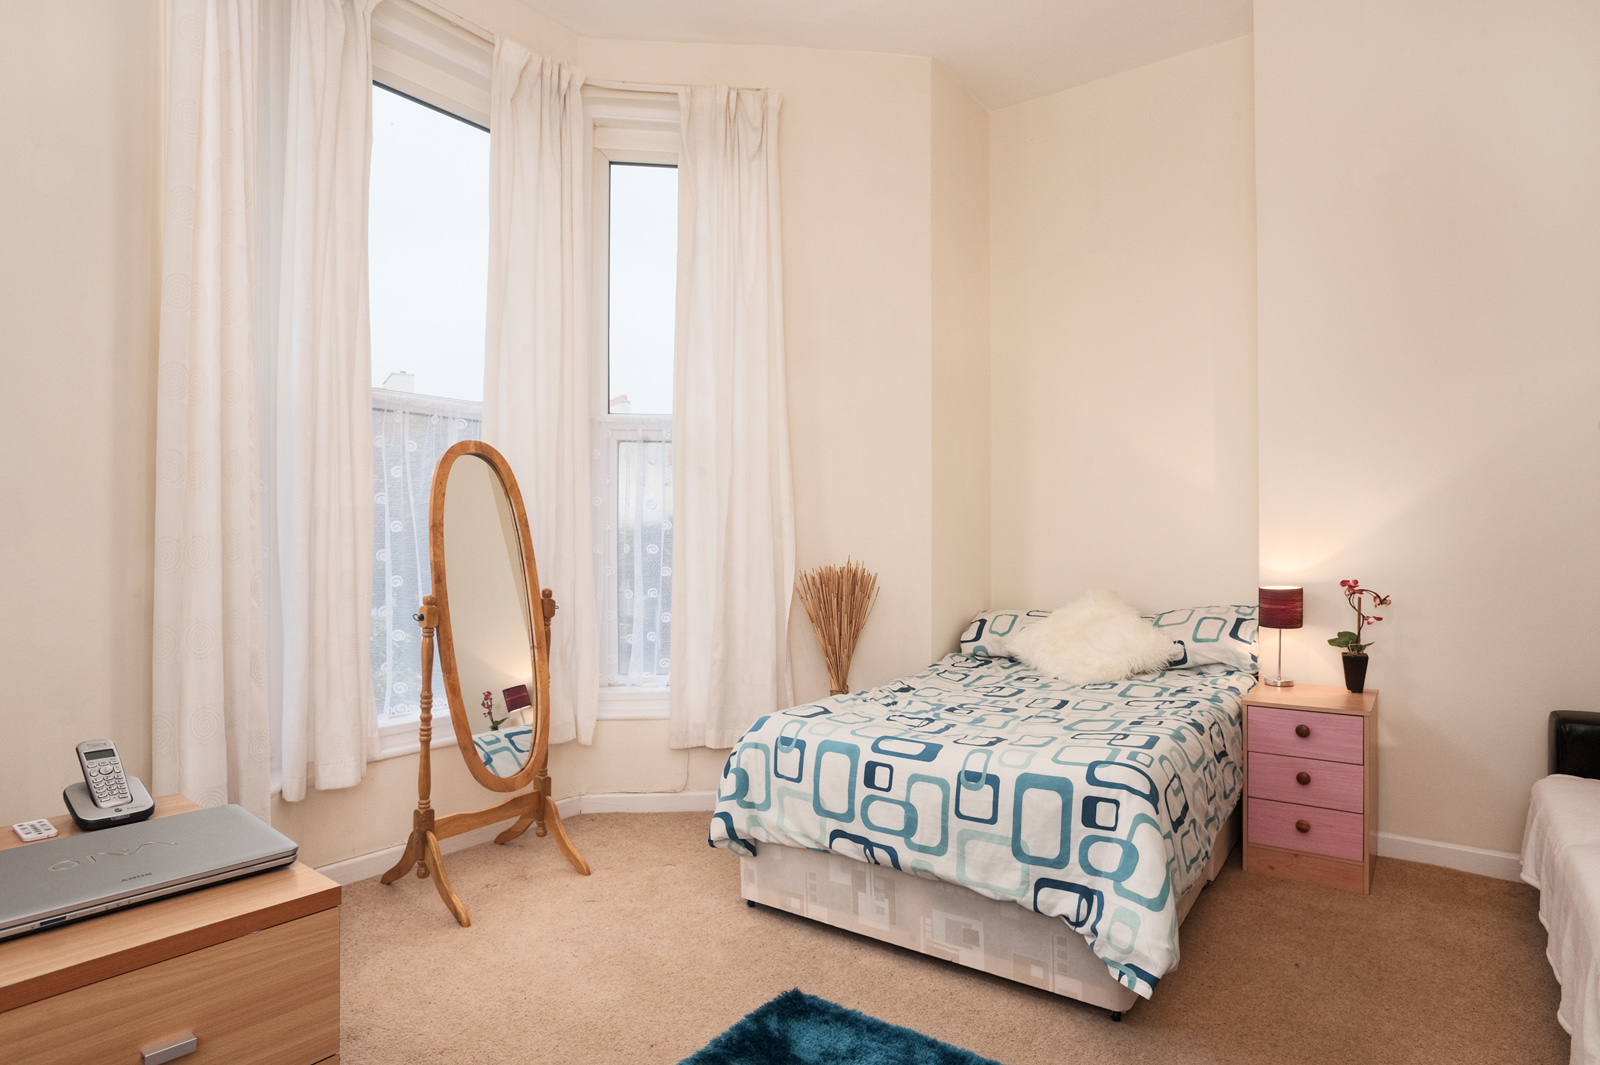 Individual Rooms For Student Accommodation in Plymouth